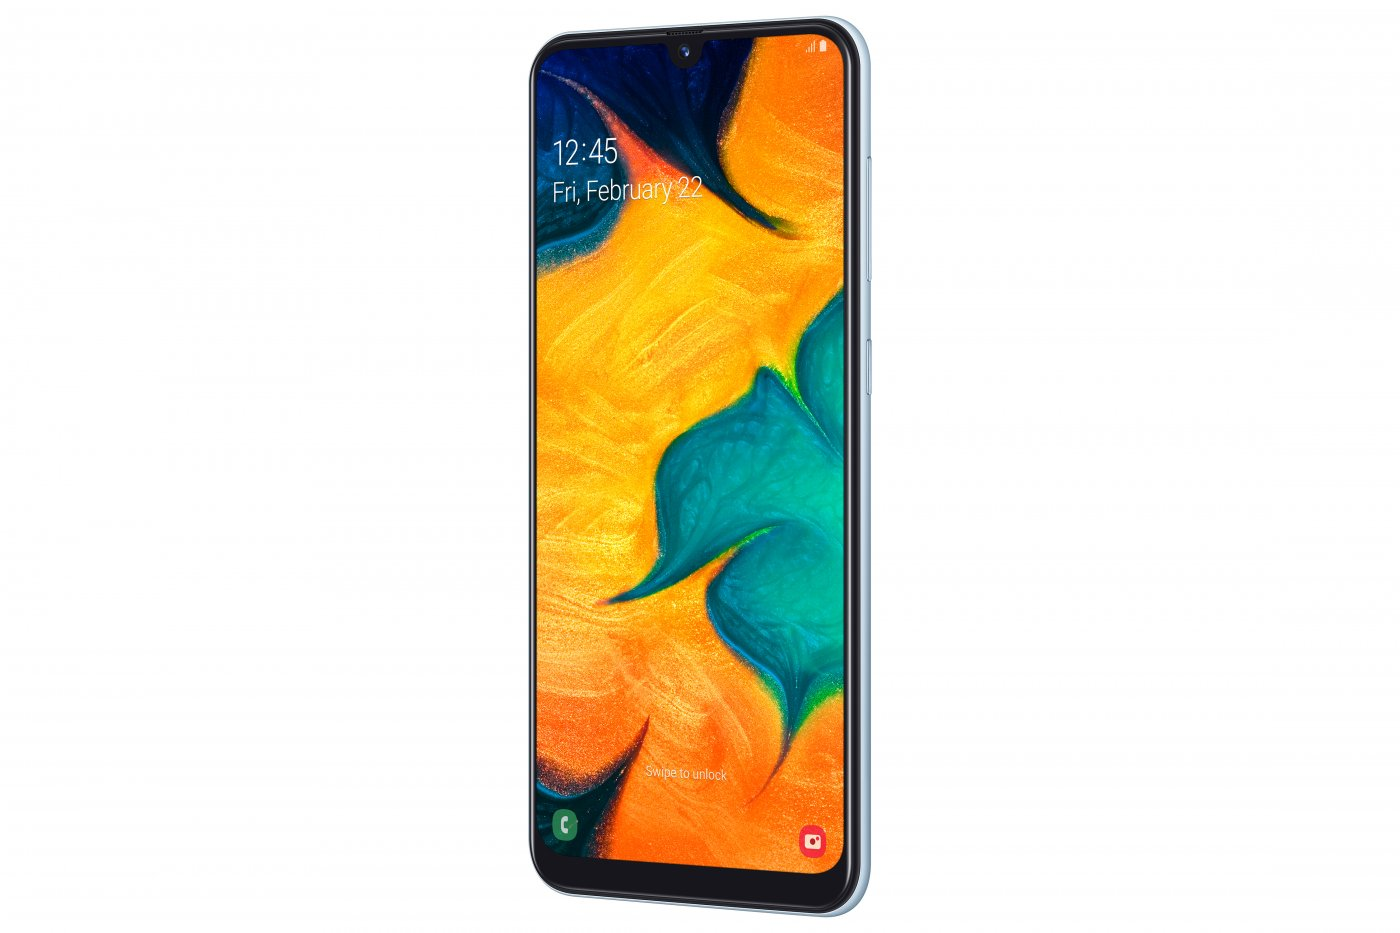 Samsung Galaxy A60 Leak - Features 6.7-Inch AMOLED, 4500mAh Battery, & More 3